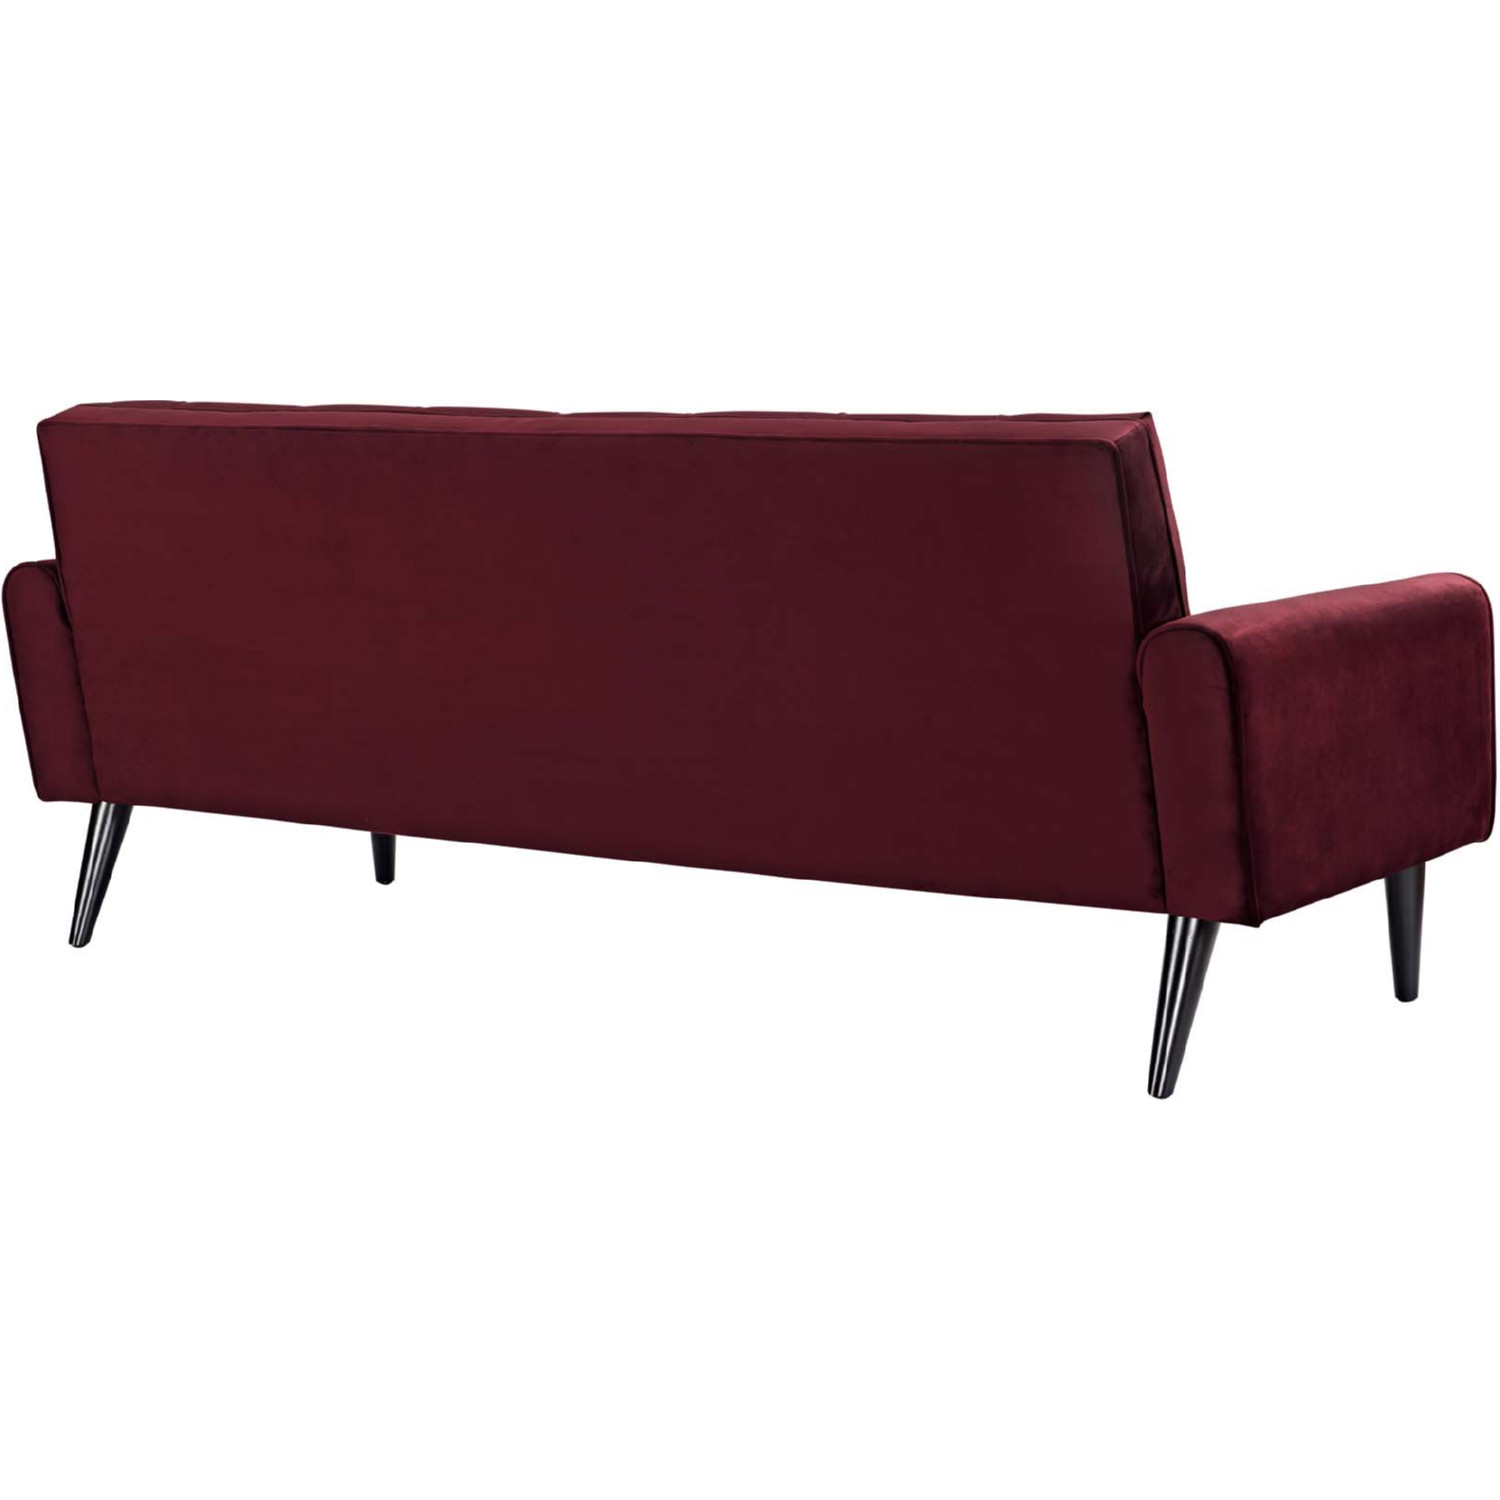 tufted button sofa simple wooden set images modway eei 2456 mar delve in maroon velvet on tap to expand